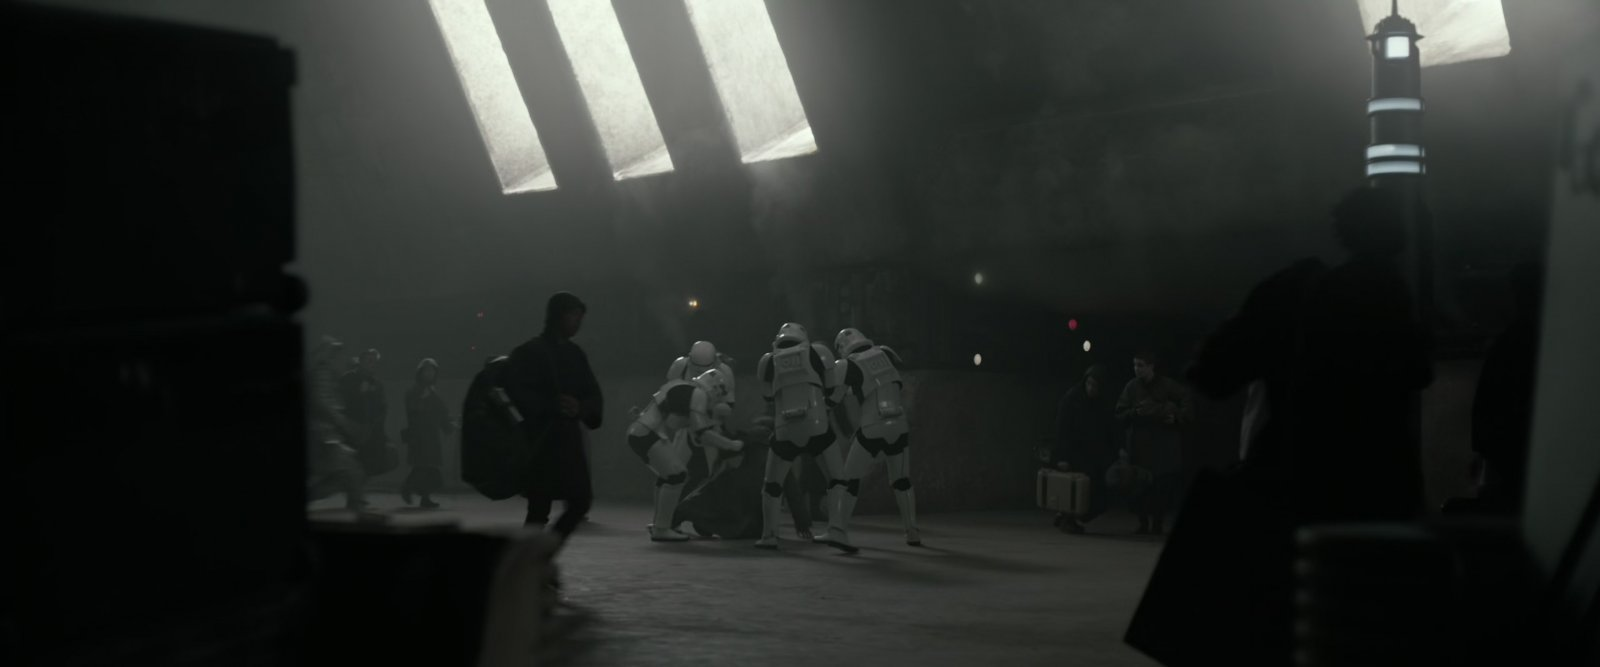 Solo Bluray References